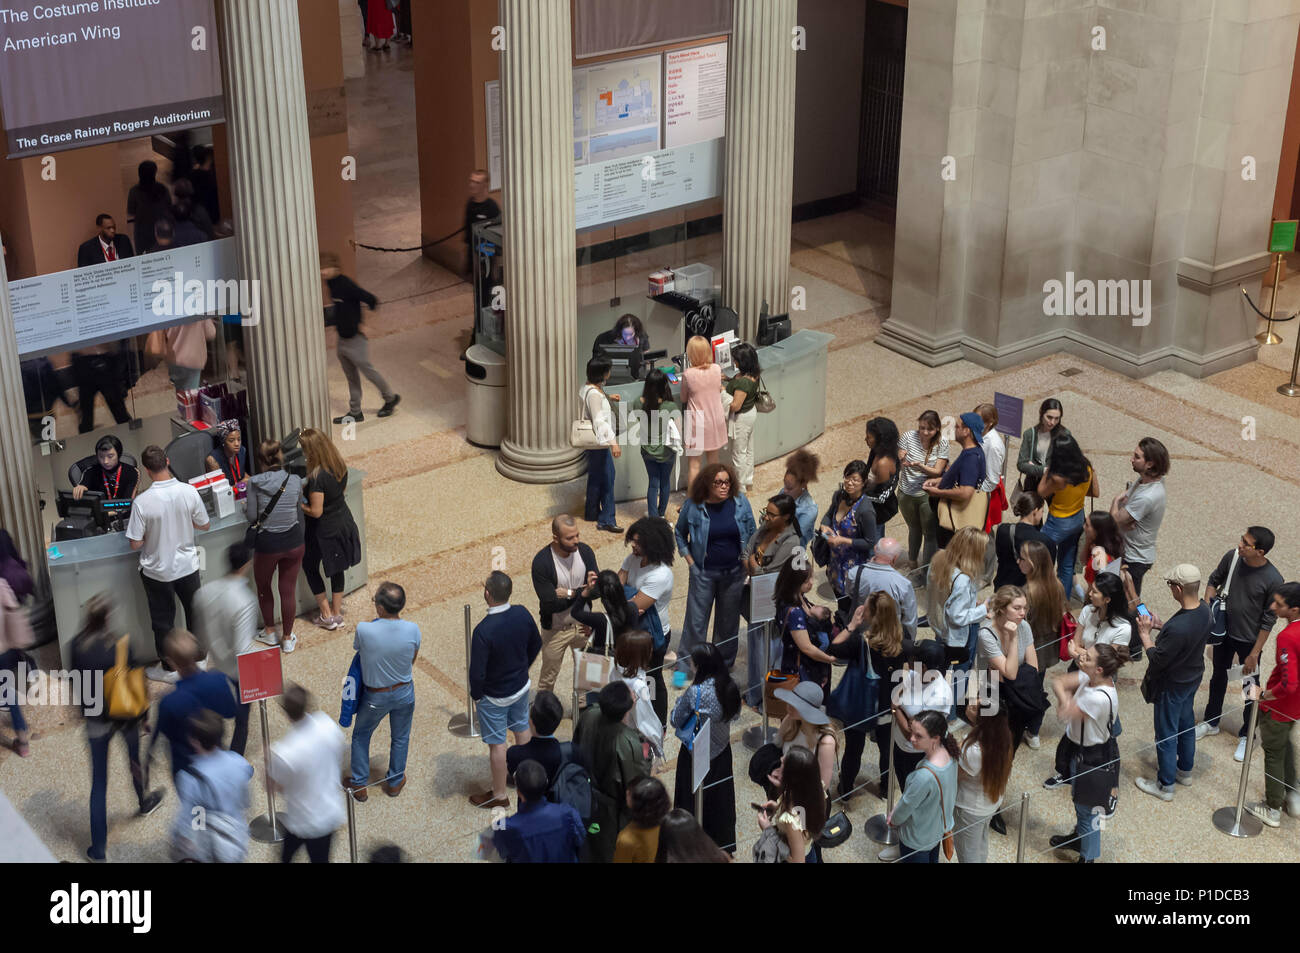 Visitors on line to pay admission to the Metropolitan Museum of Art in New York on Monday, May 28, 2018. Earlier this year the museum started a two tier admission program with New York City and tri-state residents participating in a pay-what-you-want scheme and tourists paying the full fare. (© Richard B. Levine) - Stock Image